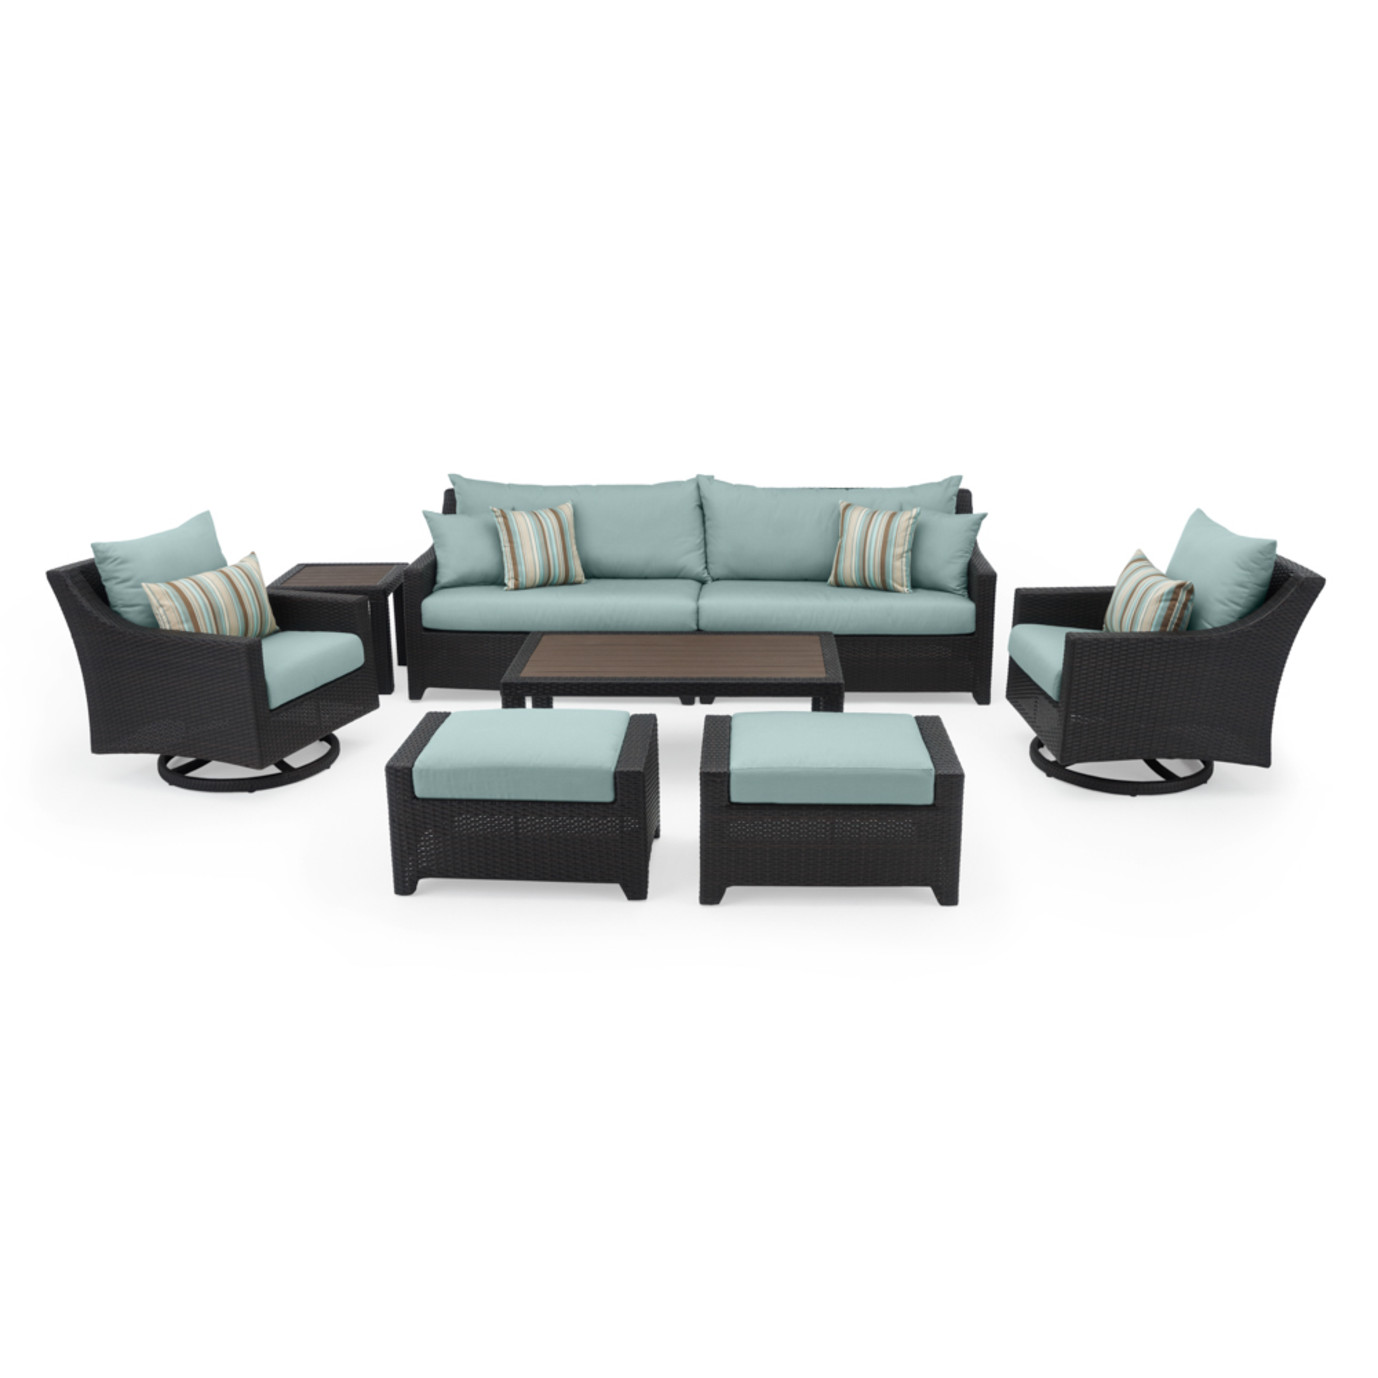 Deco™ Deluxe 8pc Sofa & Club Chair Set - Bliss Blue